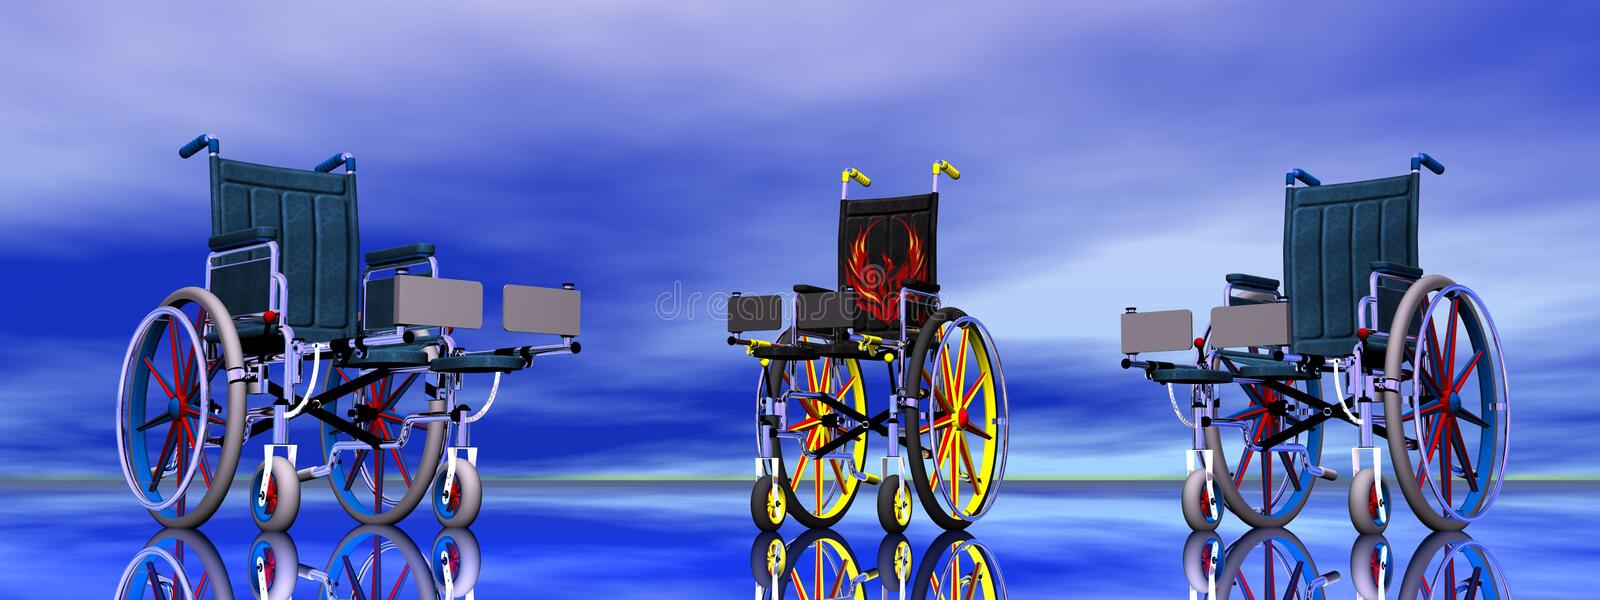 Download Wheel chairs stock illustration. Image of medical, equipment - 24479026